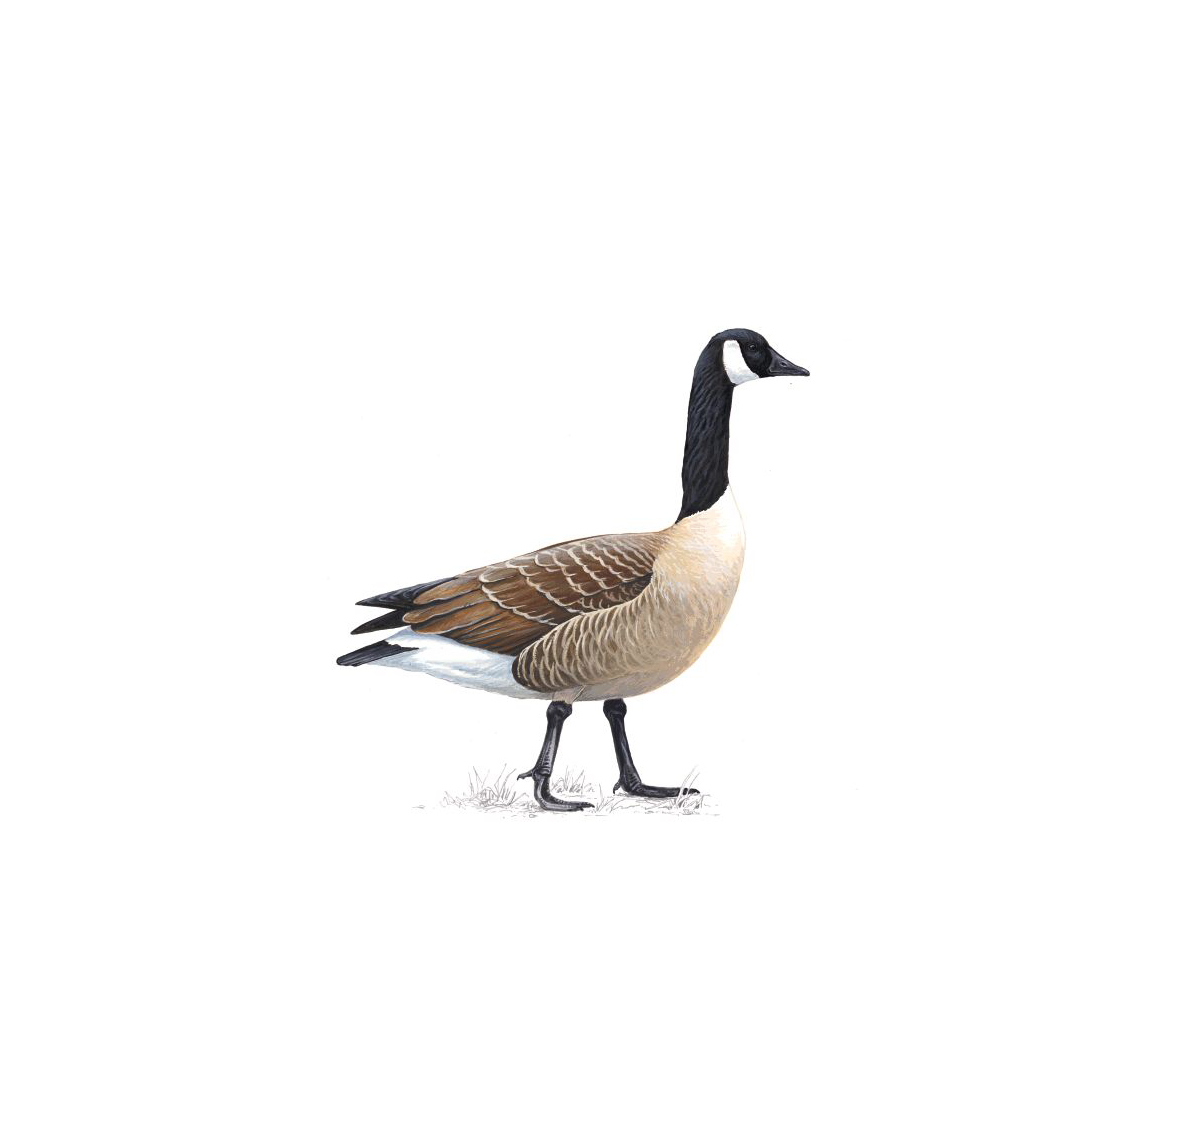 Geese Migration clipart Goose interesting history and facts